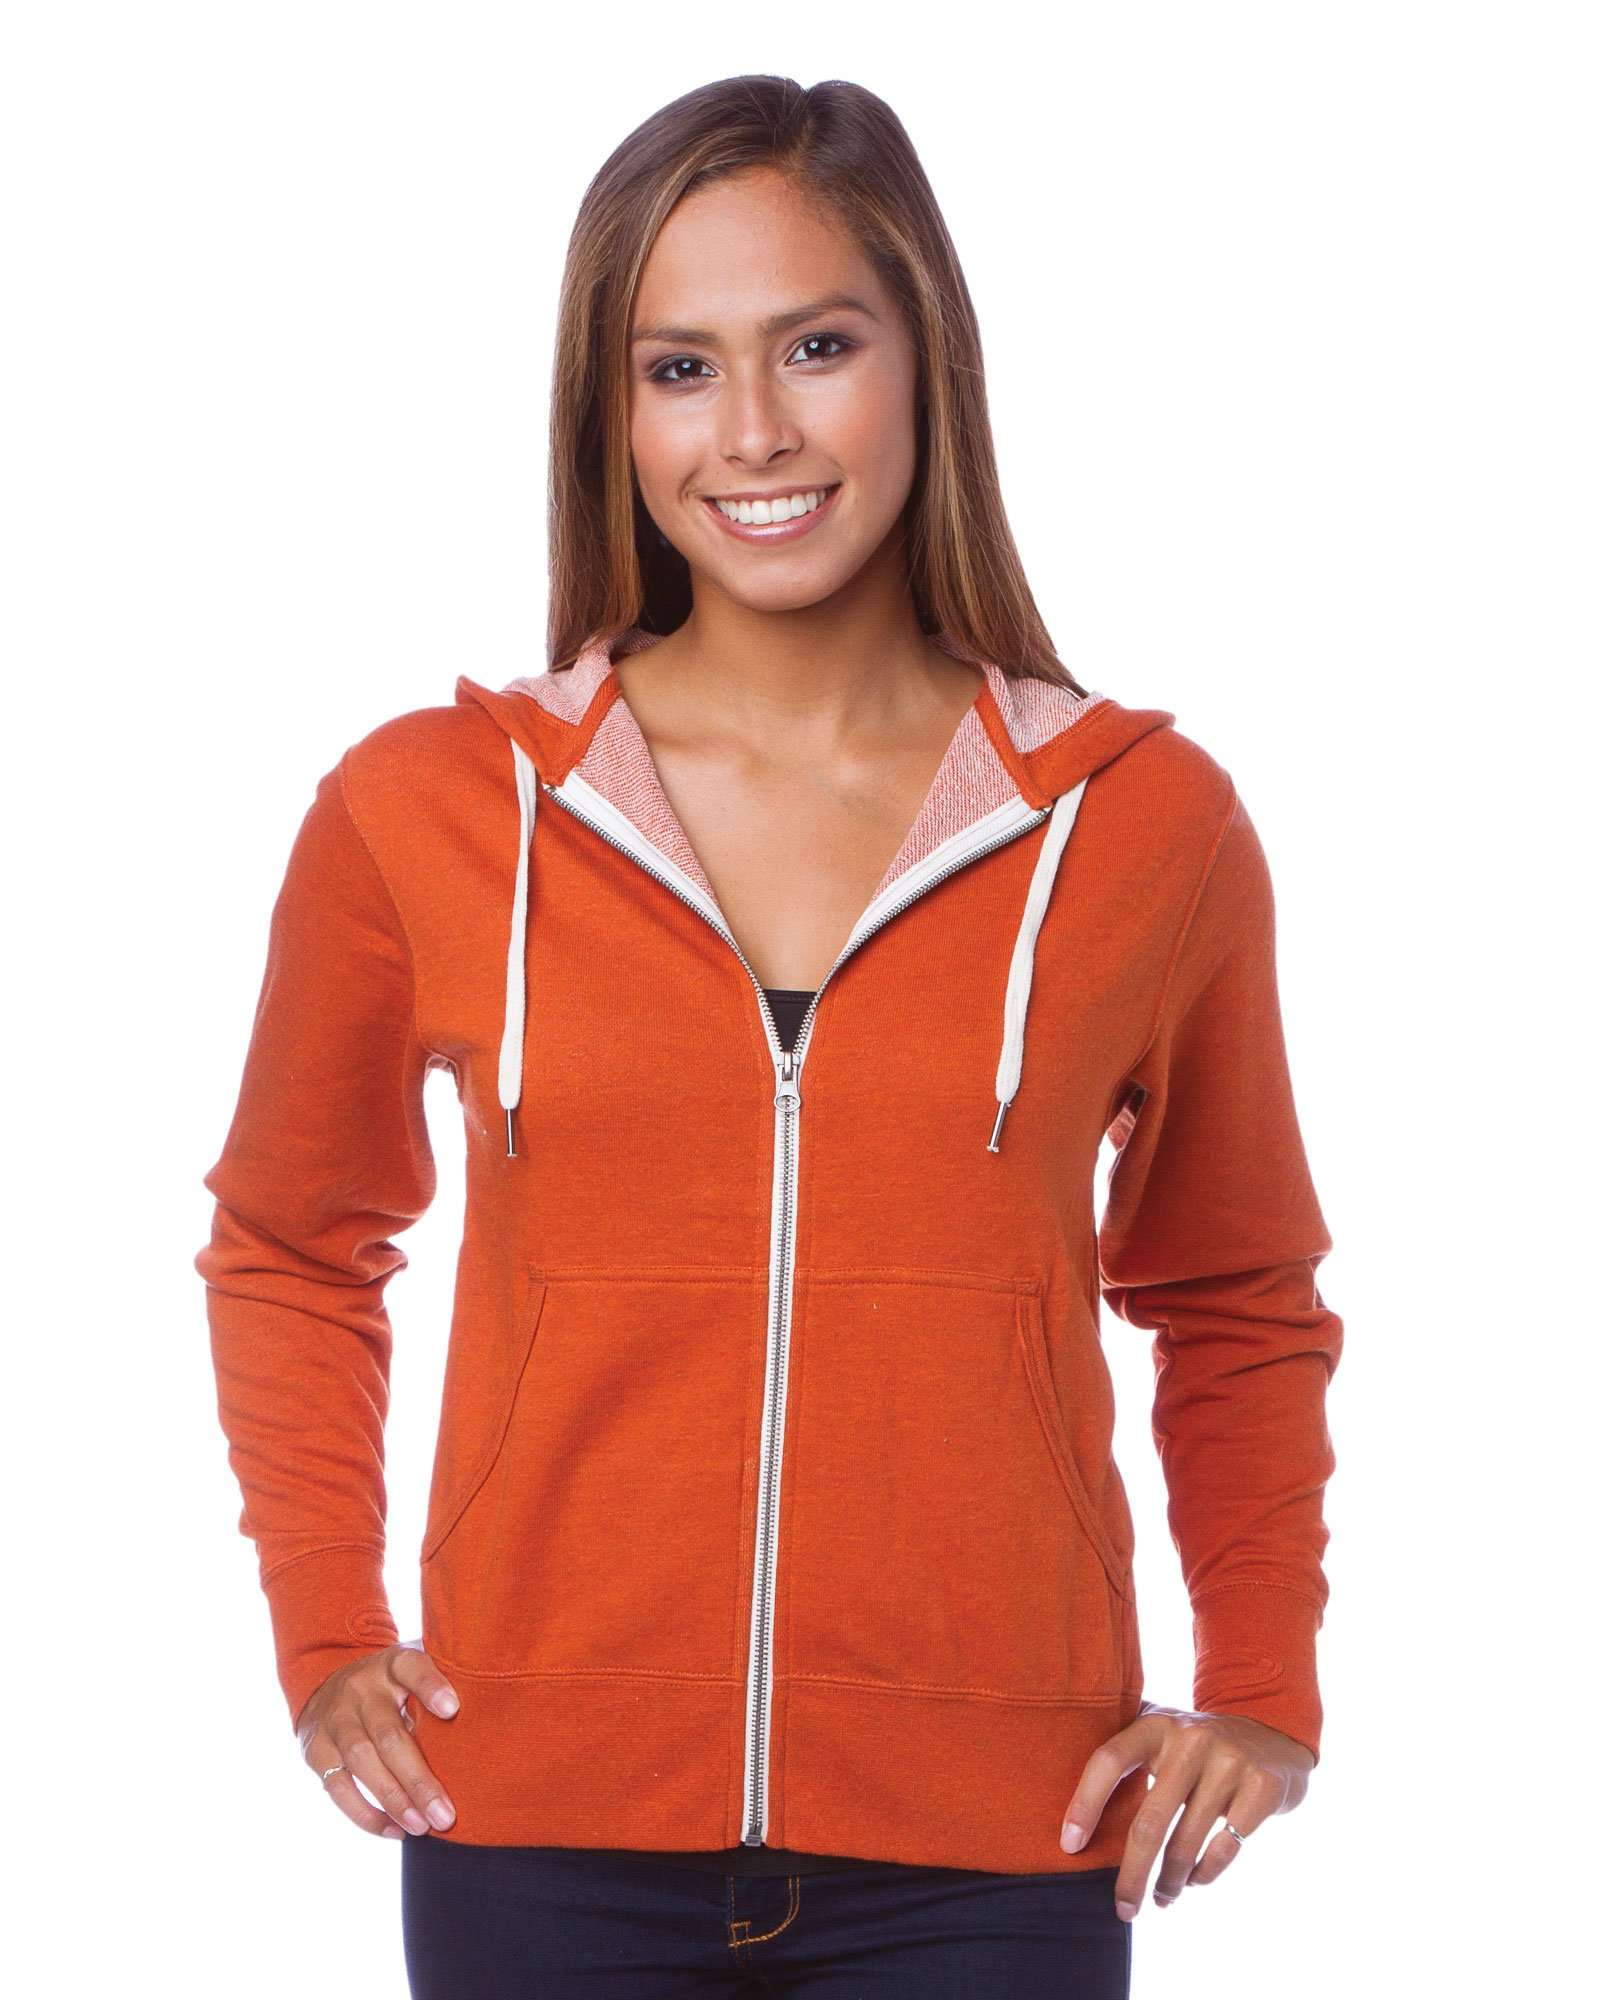 Global Blank Slim Fit French Terry Lightweight Zip up Hoodie for Men and Women XS Rust Orange by Global Blank